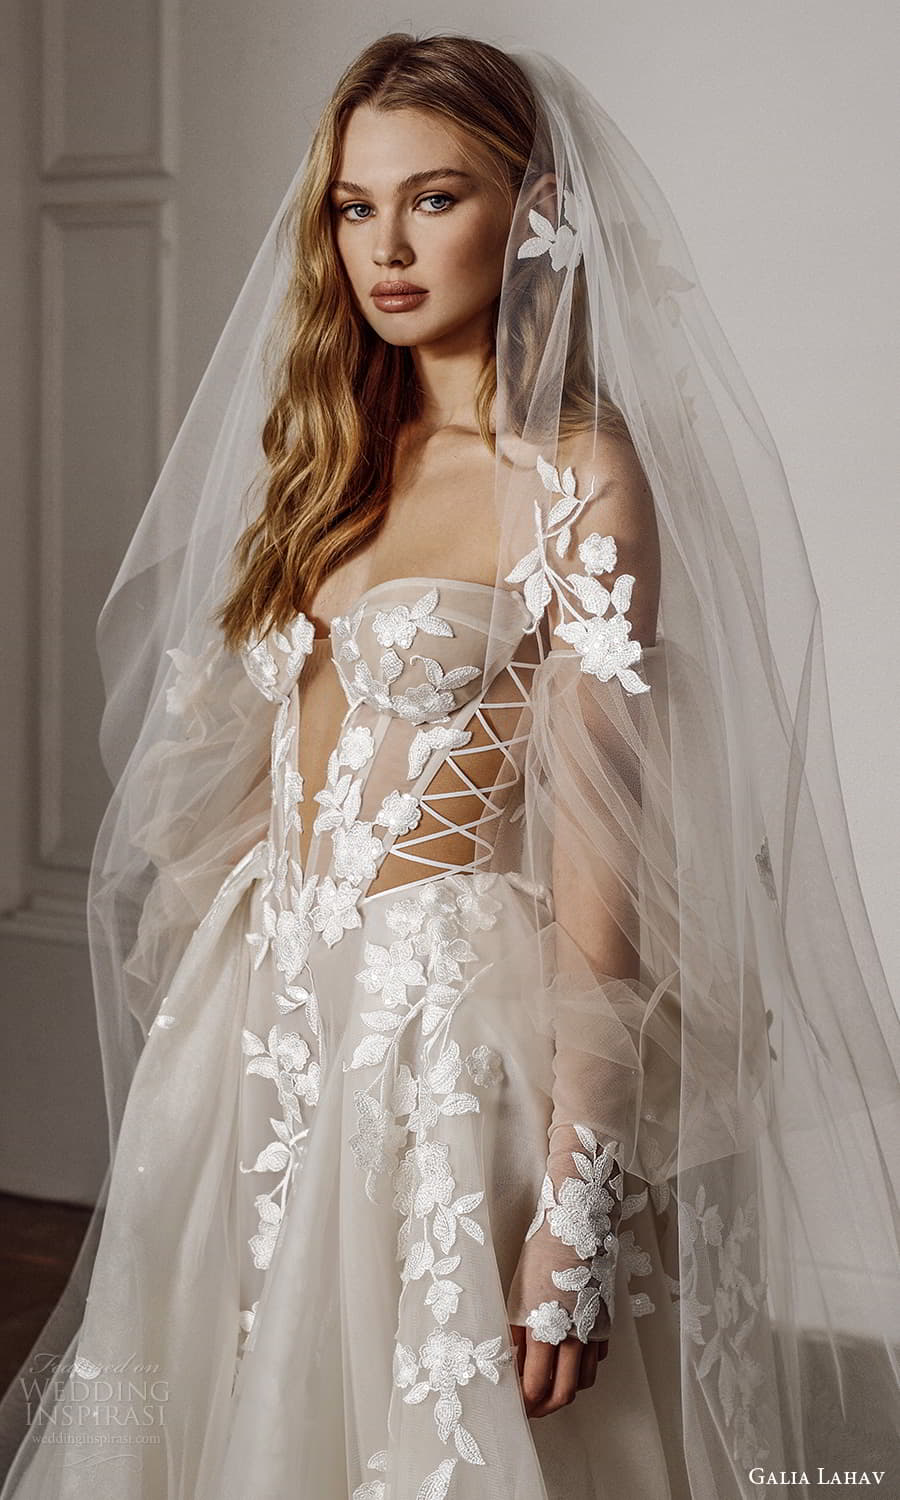 galia lahav spring 2022 bridal detached puff sleeves strapless sweetheart neckline fully embellished a line ball gown wedding dress chapel train (5) zv